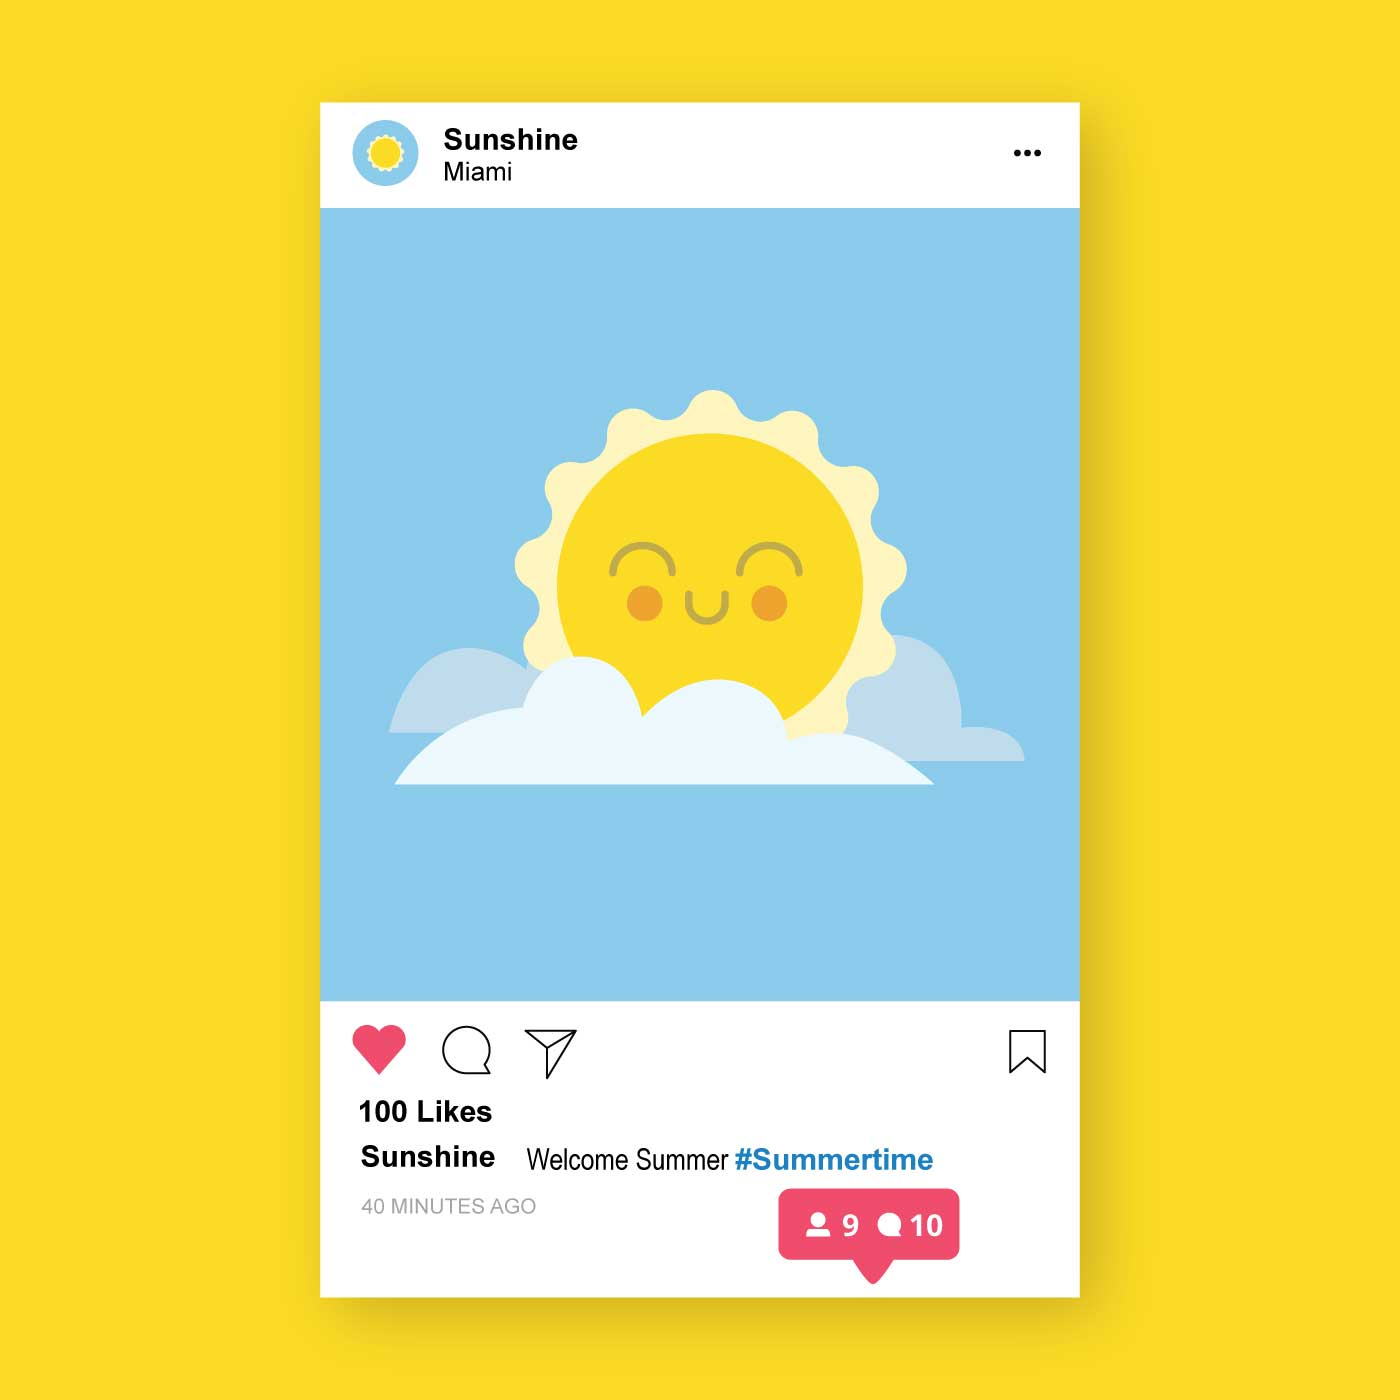 discover more how Instagram works